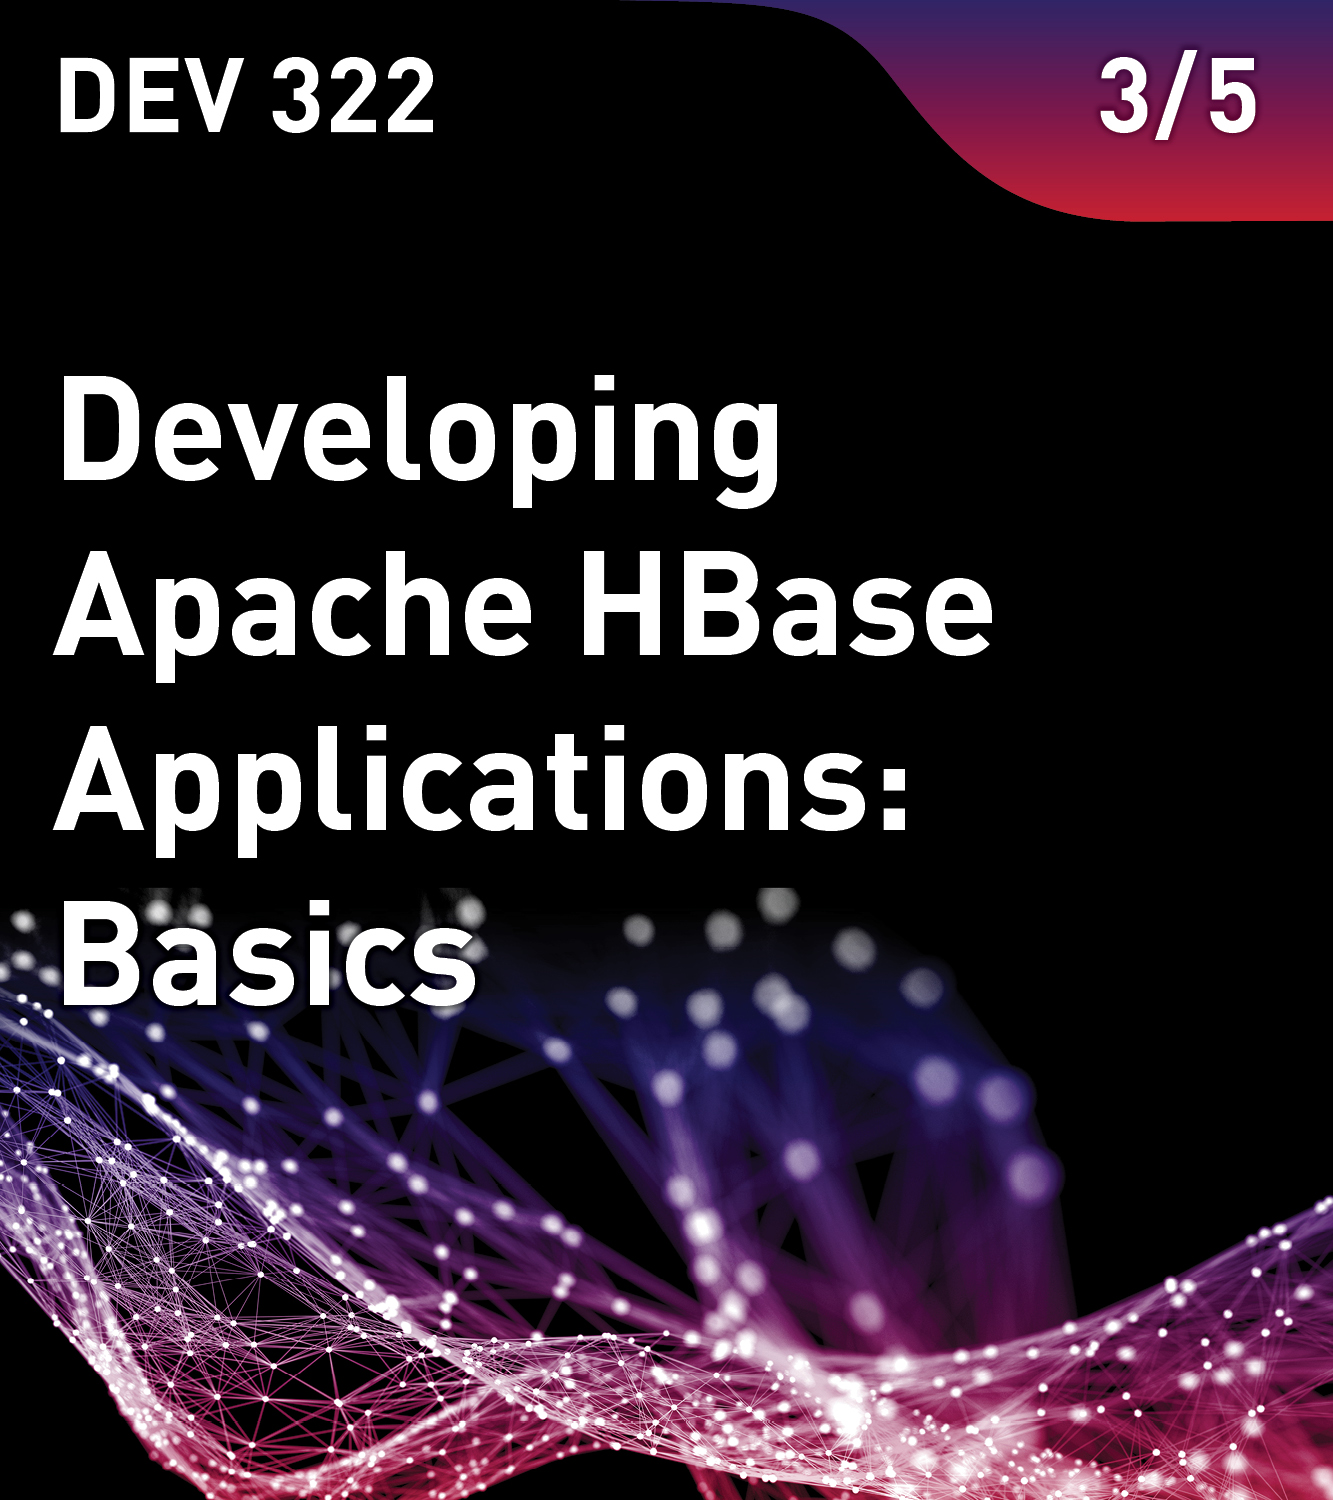 Developing Apache HBase Applications: Basics